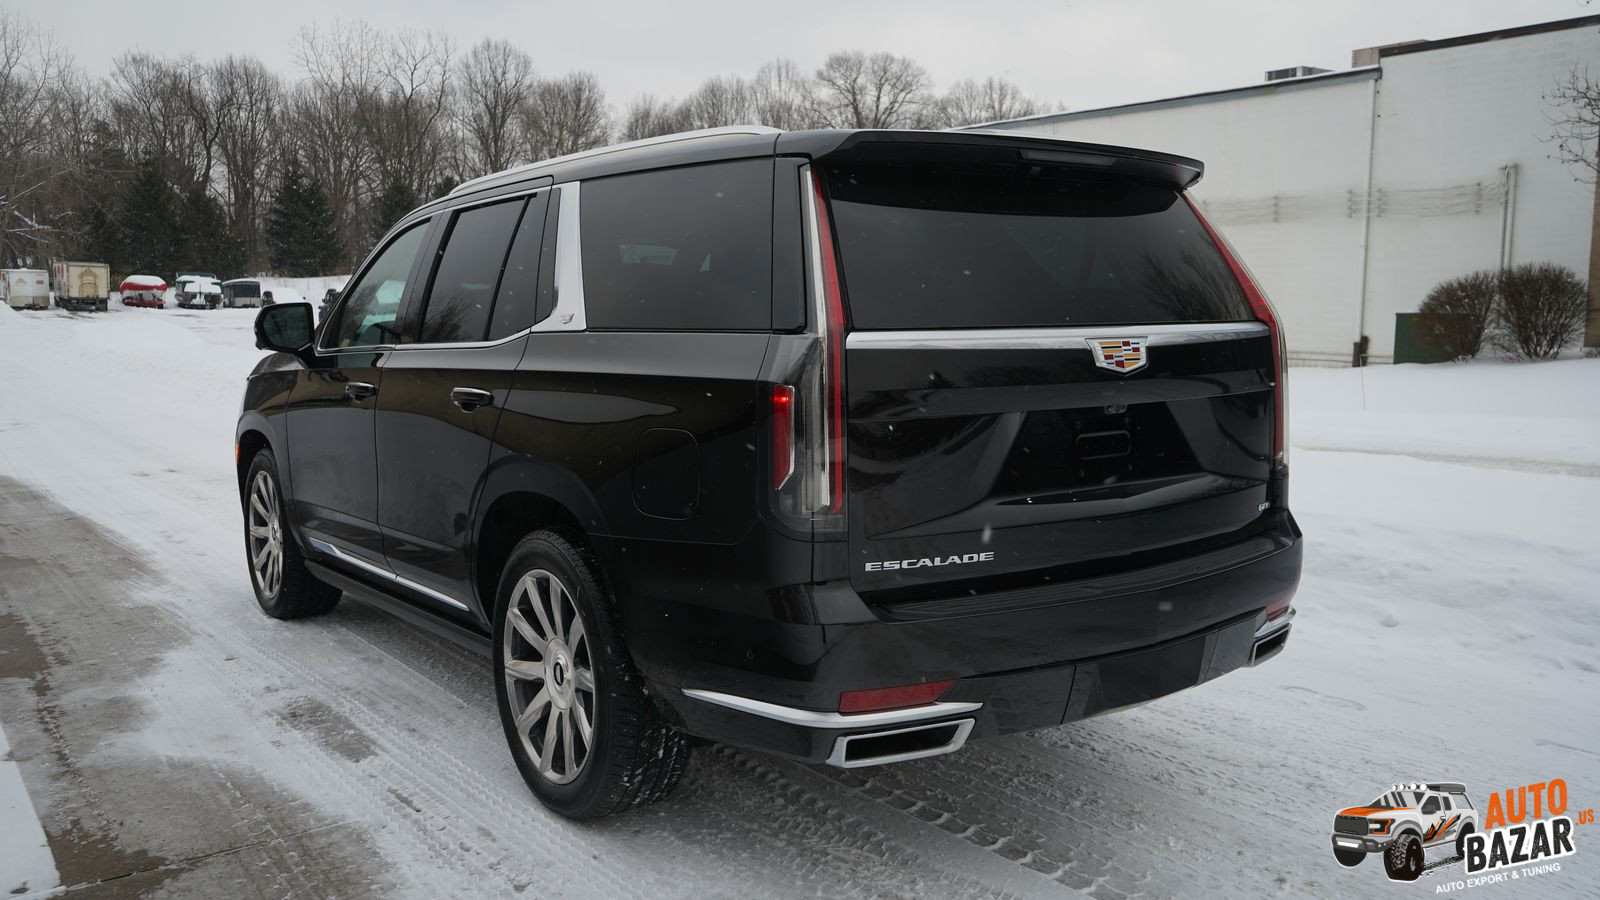 /storage/inventories/1103/2021 Cadillac Escalade 1103 (4).JPG